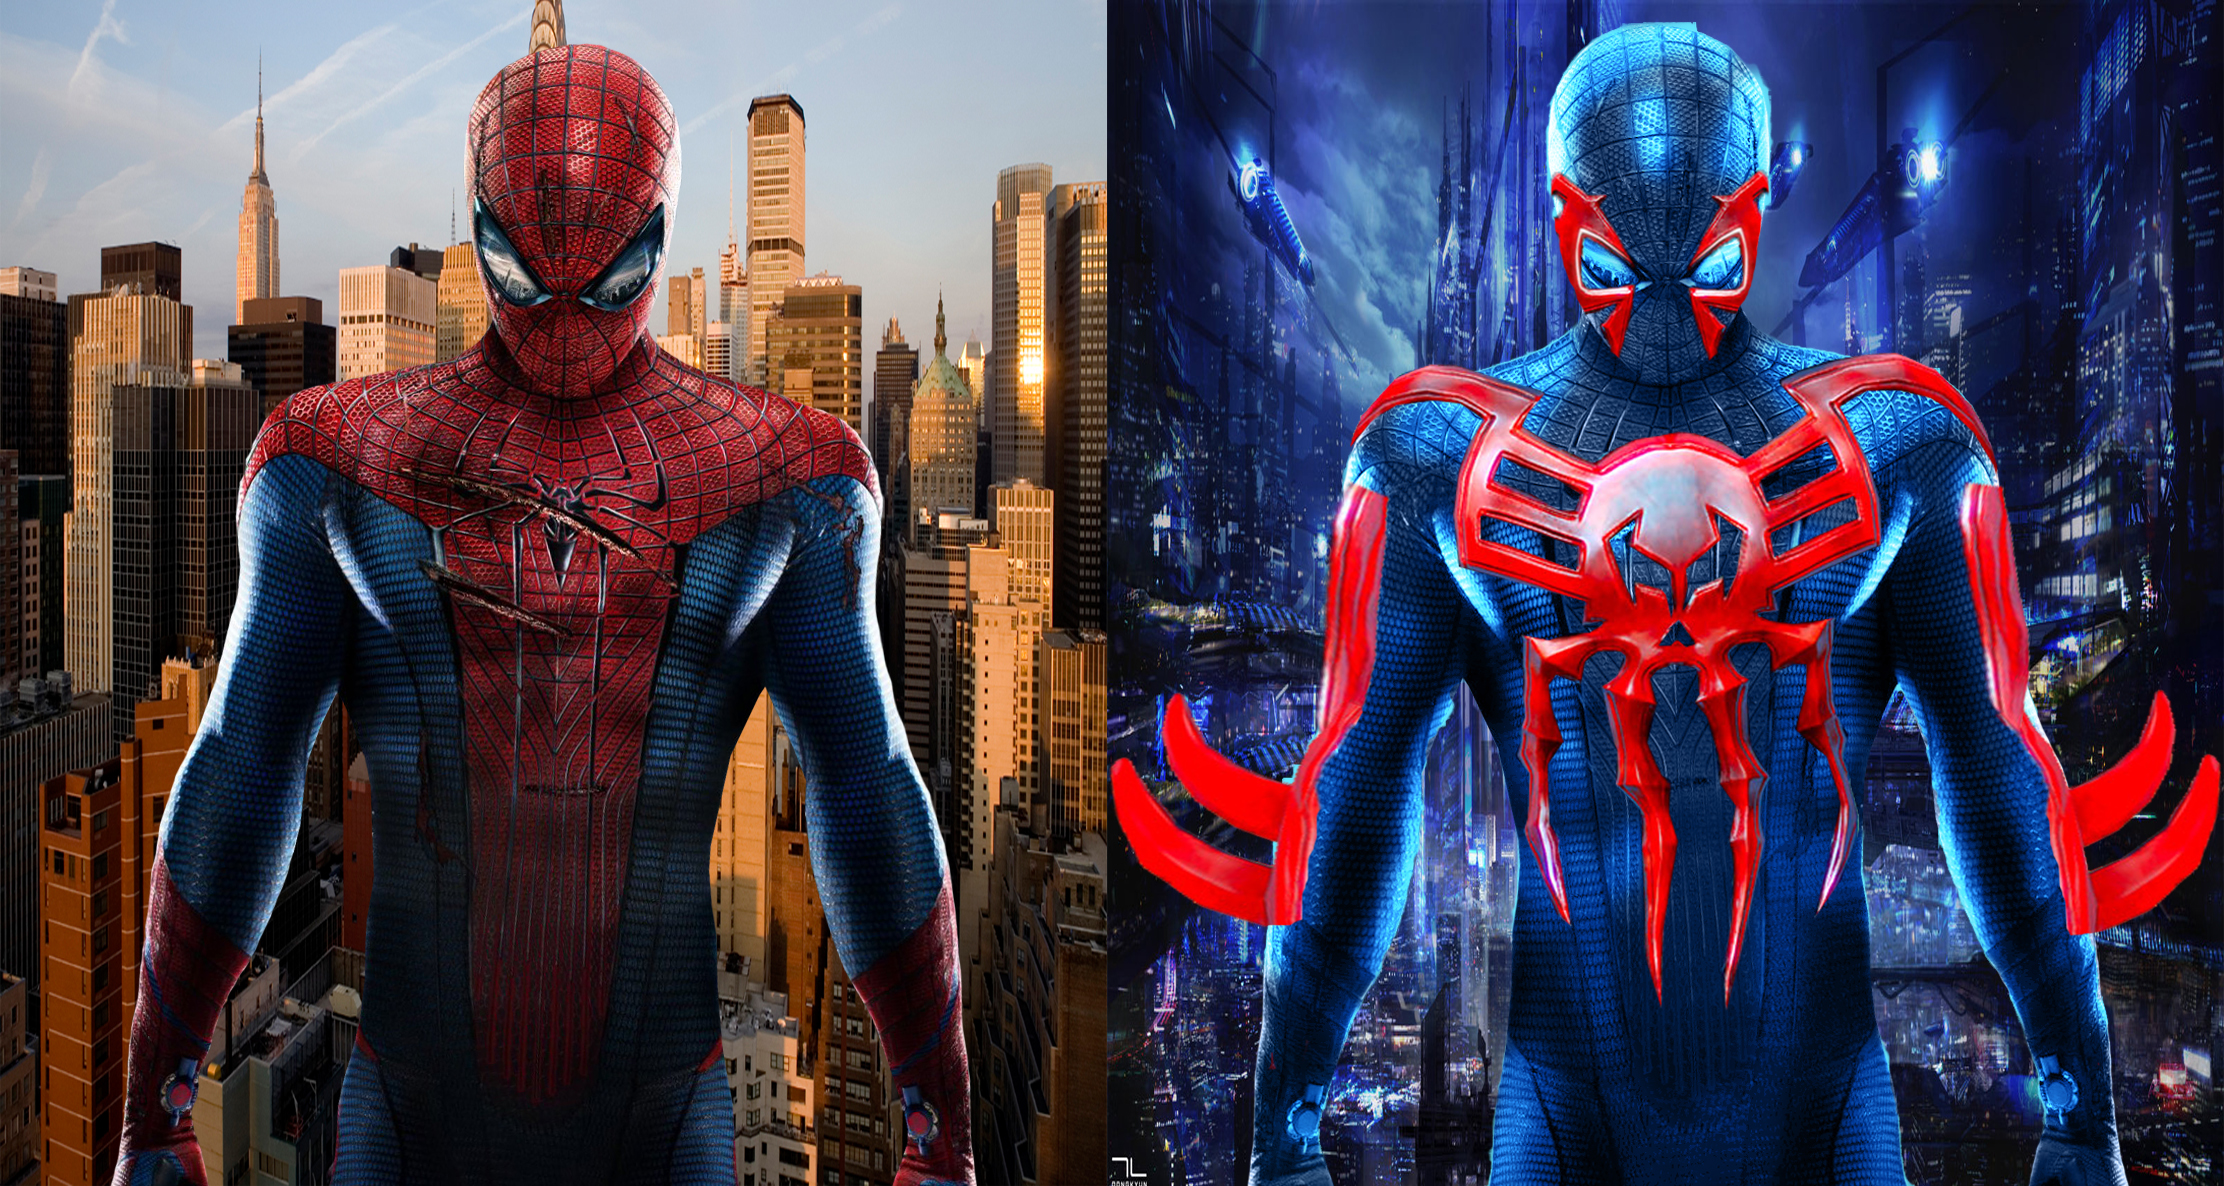 Cool Spiderman 2099 Wallpaper: Costume Changes Spider-Man--2099 Spider-Man By